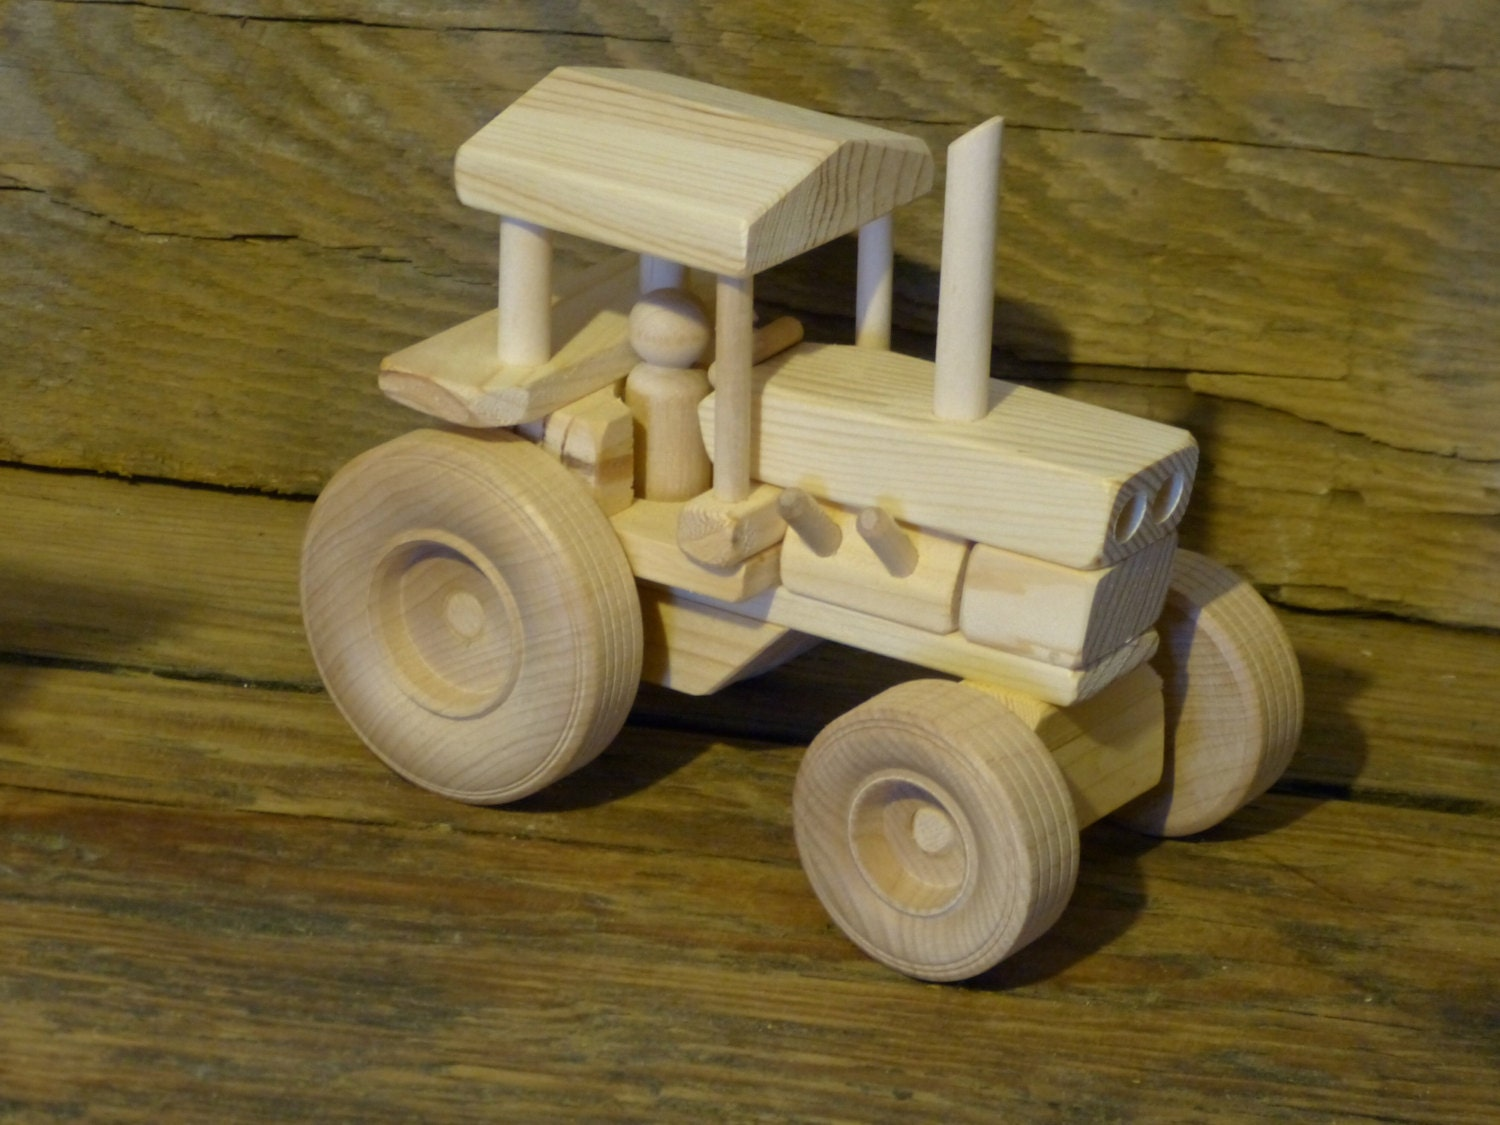 Tractor Toys For Boys : Handmade wood toy farm tractor wooden toys childs kids boys